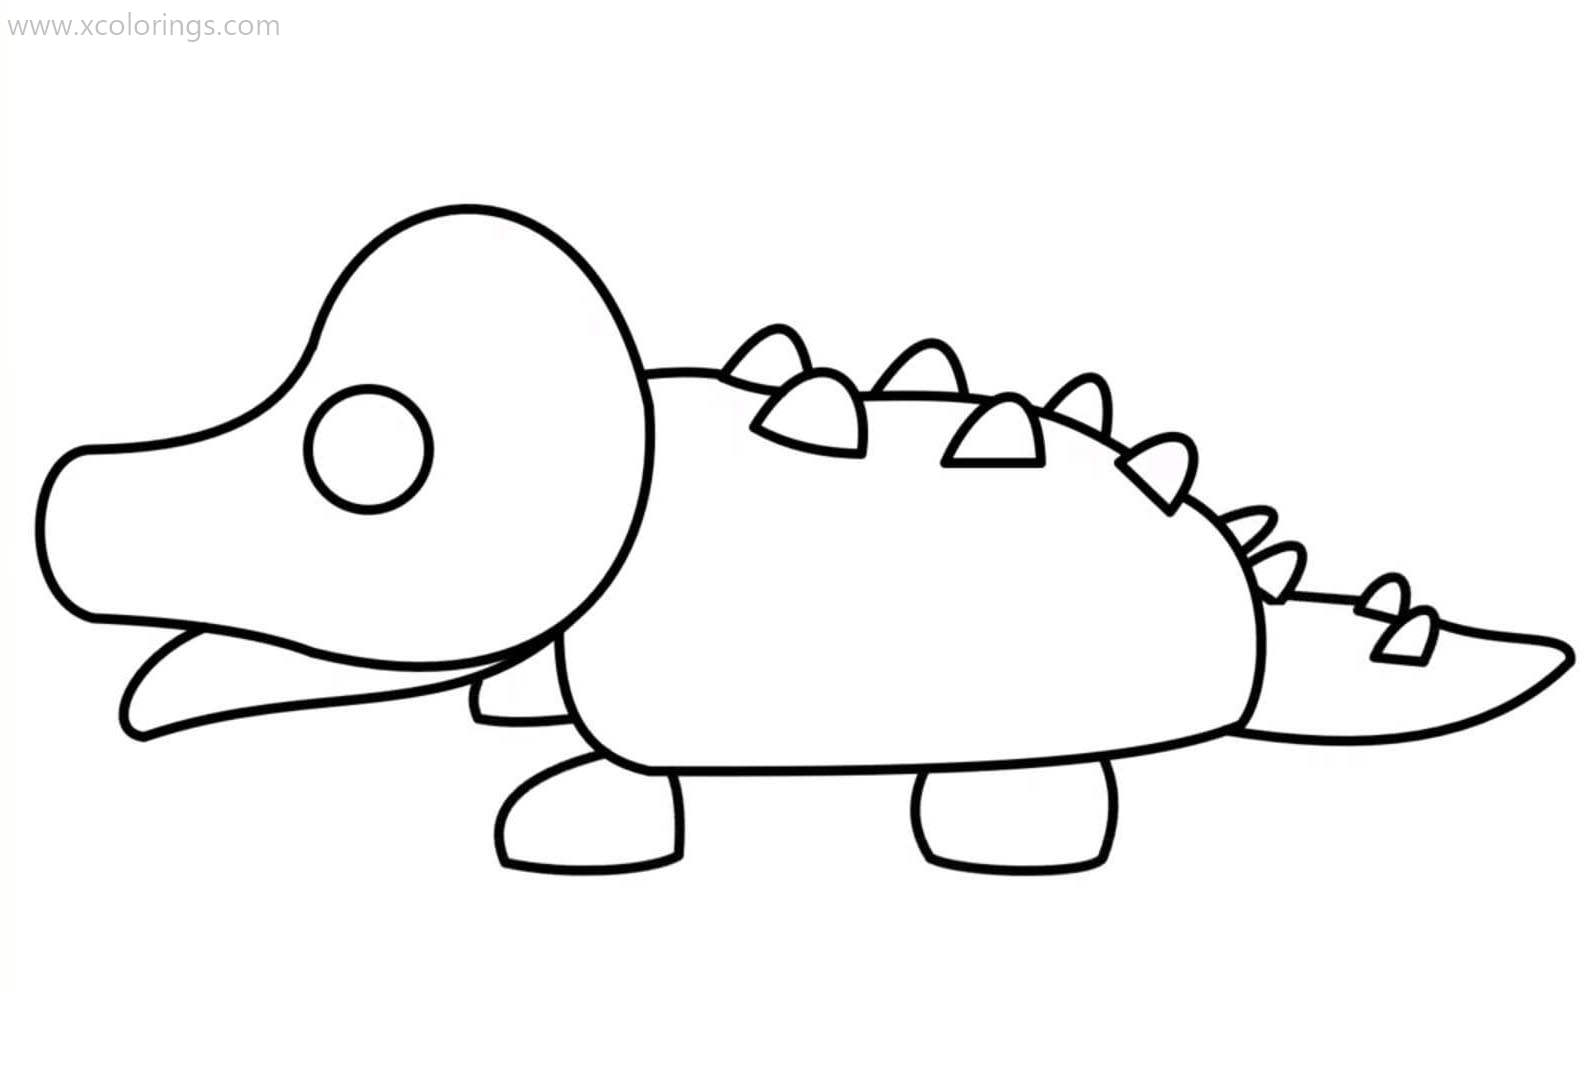 Roblox Adopt Me Coloring Pages Crocodile - XColorings.com